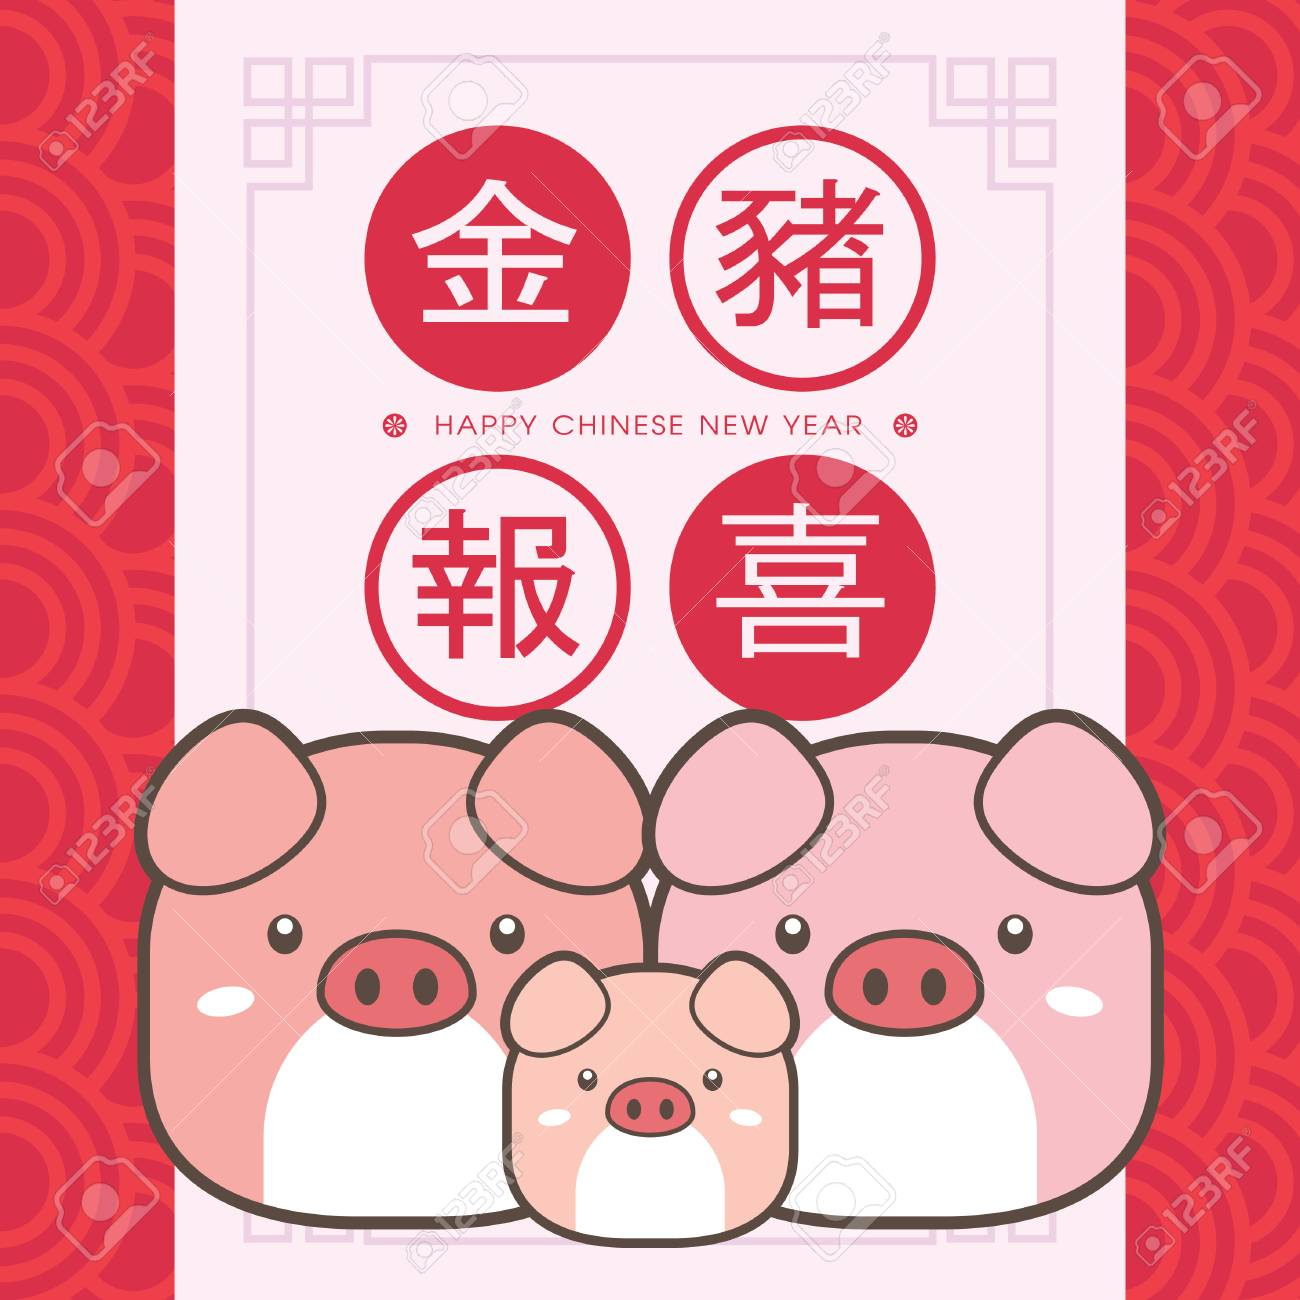 2019 chinese new year greeting card template with cute piggy family reunion together